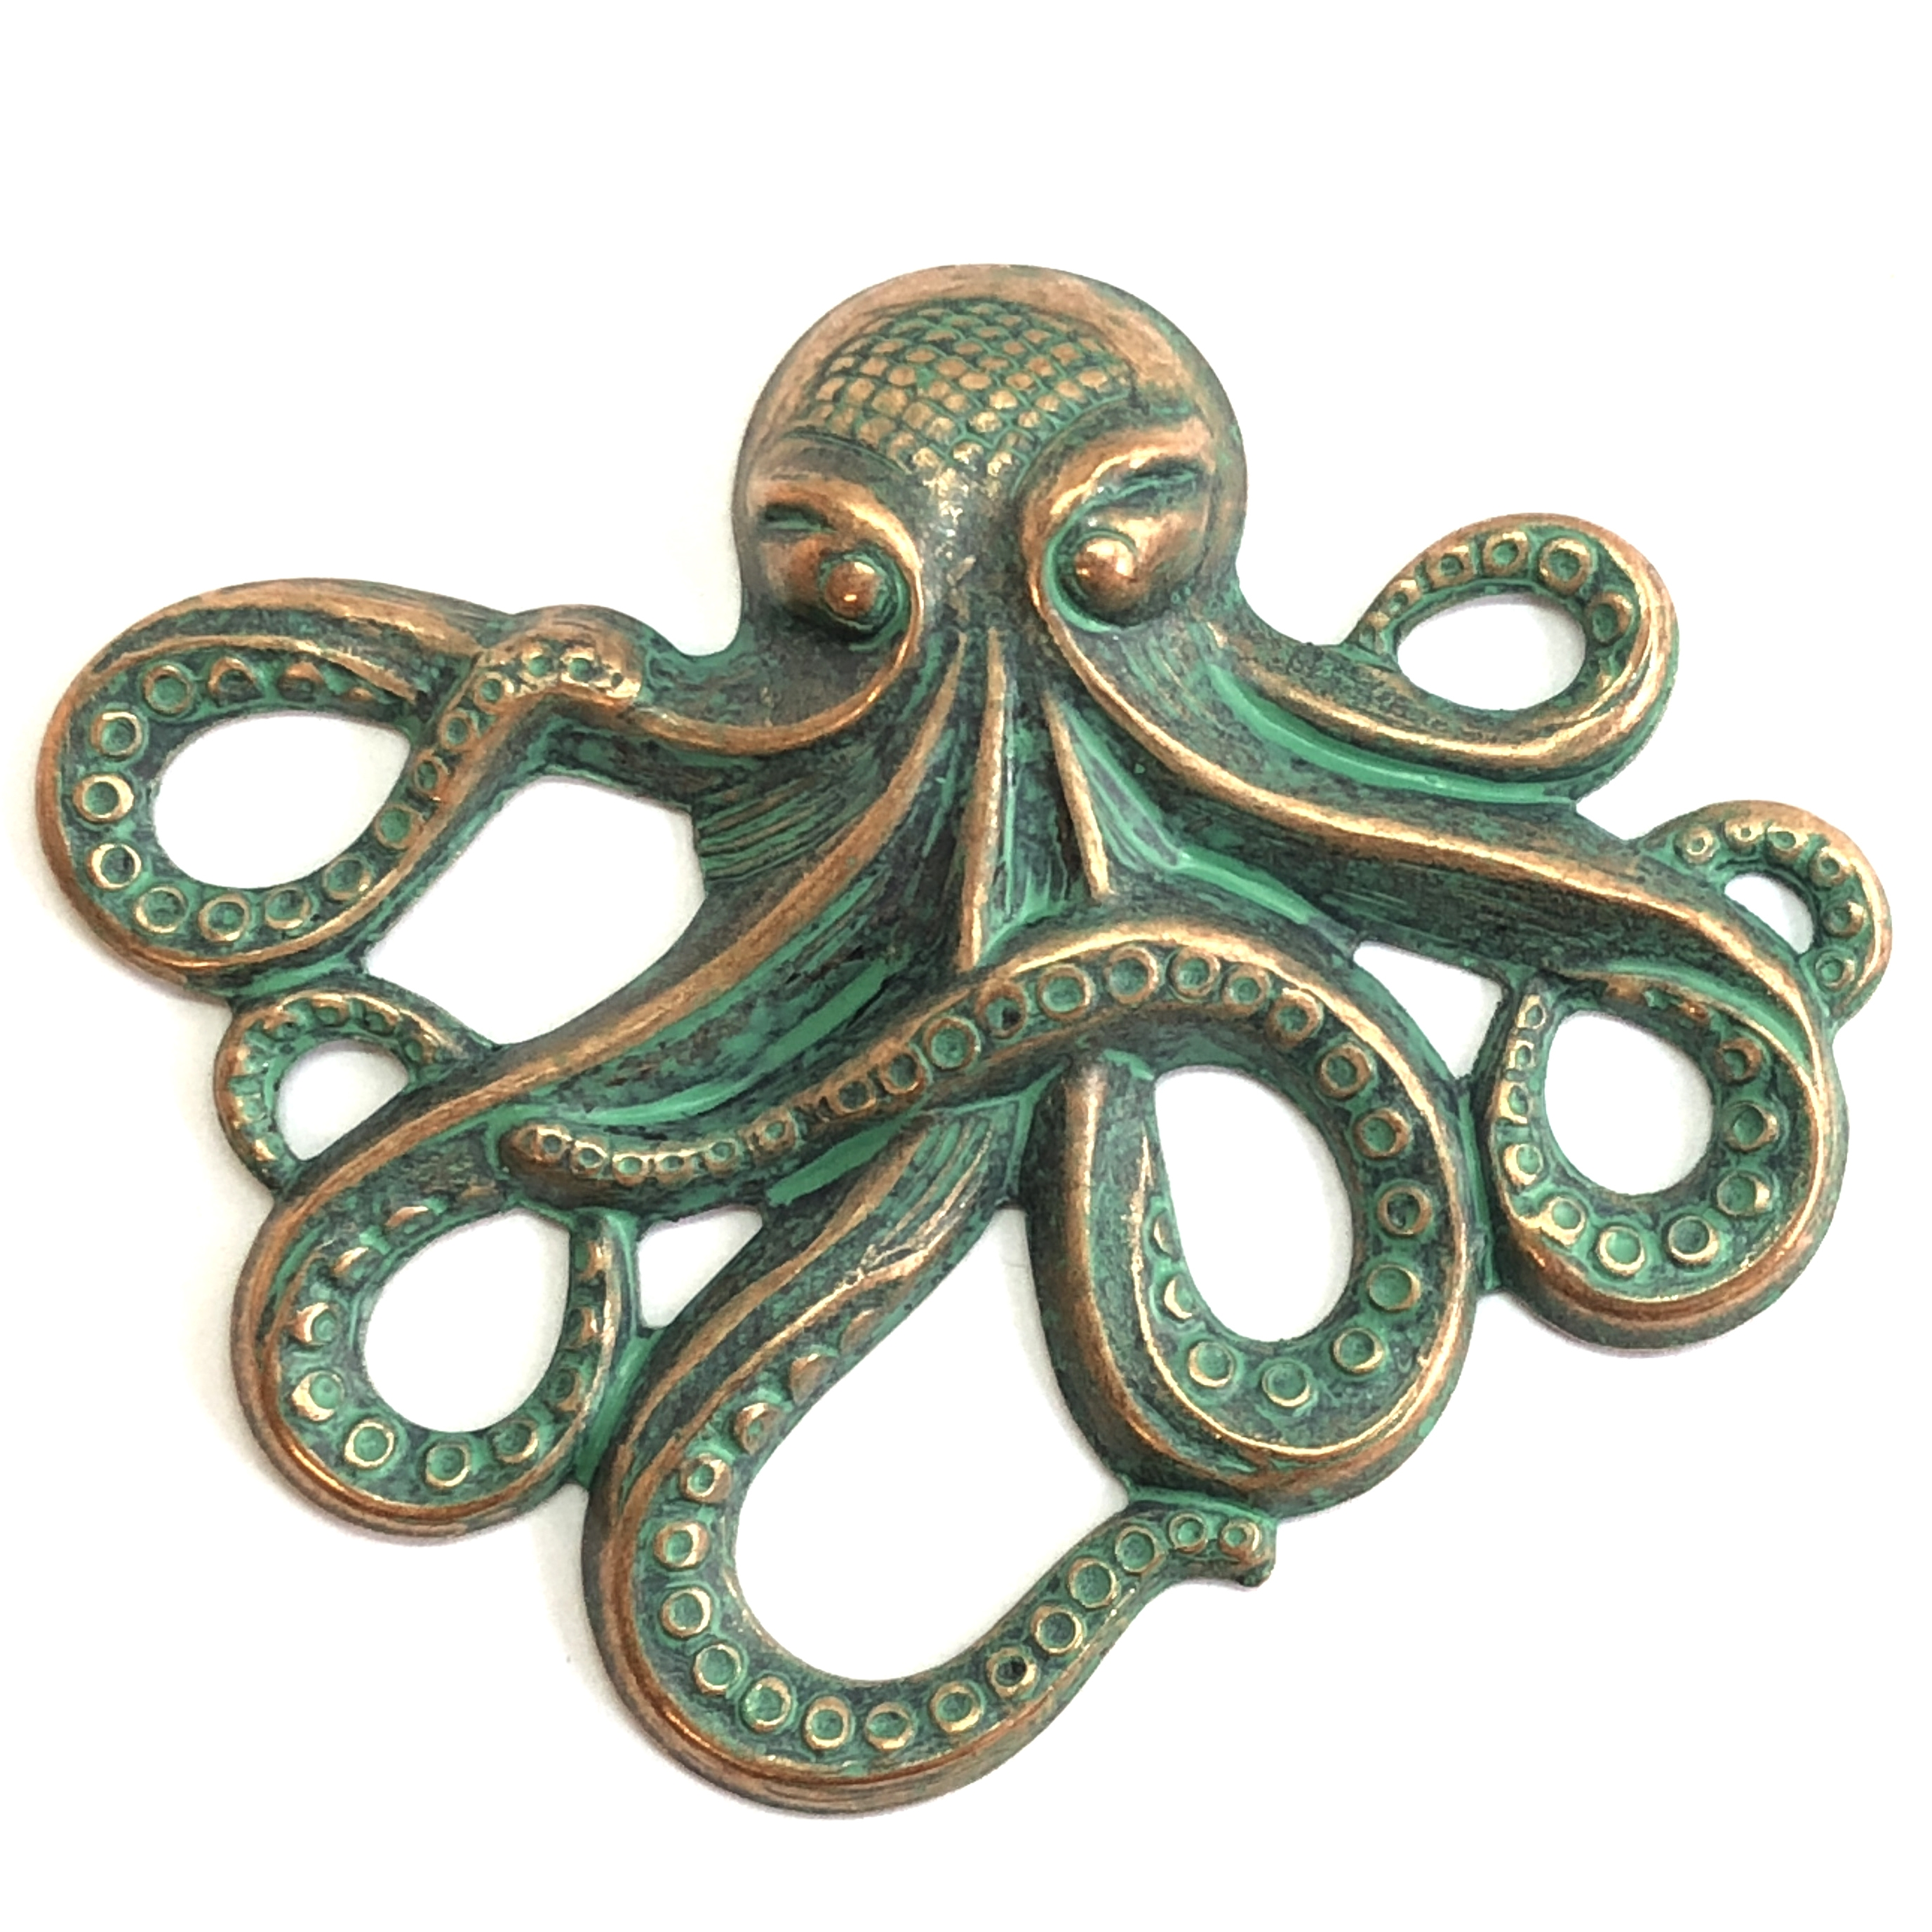 brass octopus, sea creature jewelry, aqua copper patina, 08175, vintage jewelry supplies, nickel free jewelry supplies, beach jewelry, B'sue Boutiques, antique copper, jewelry findings